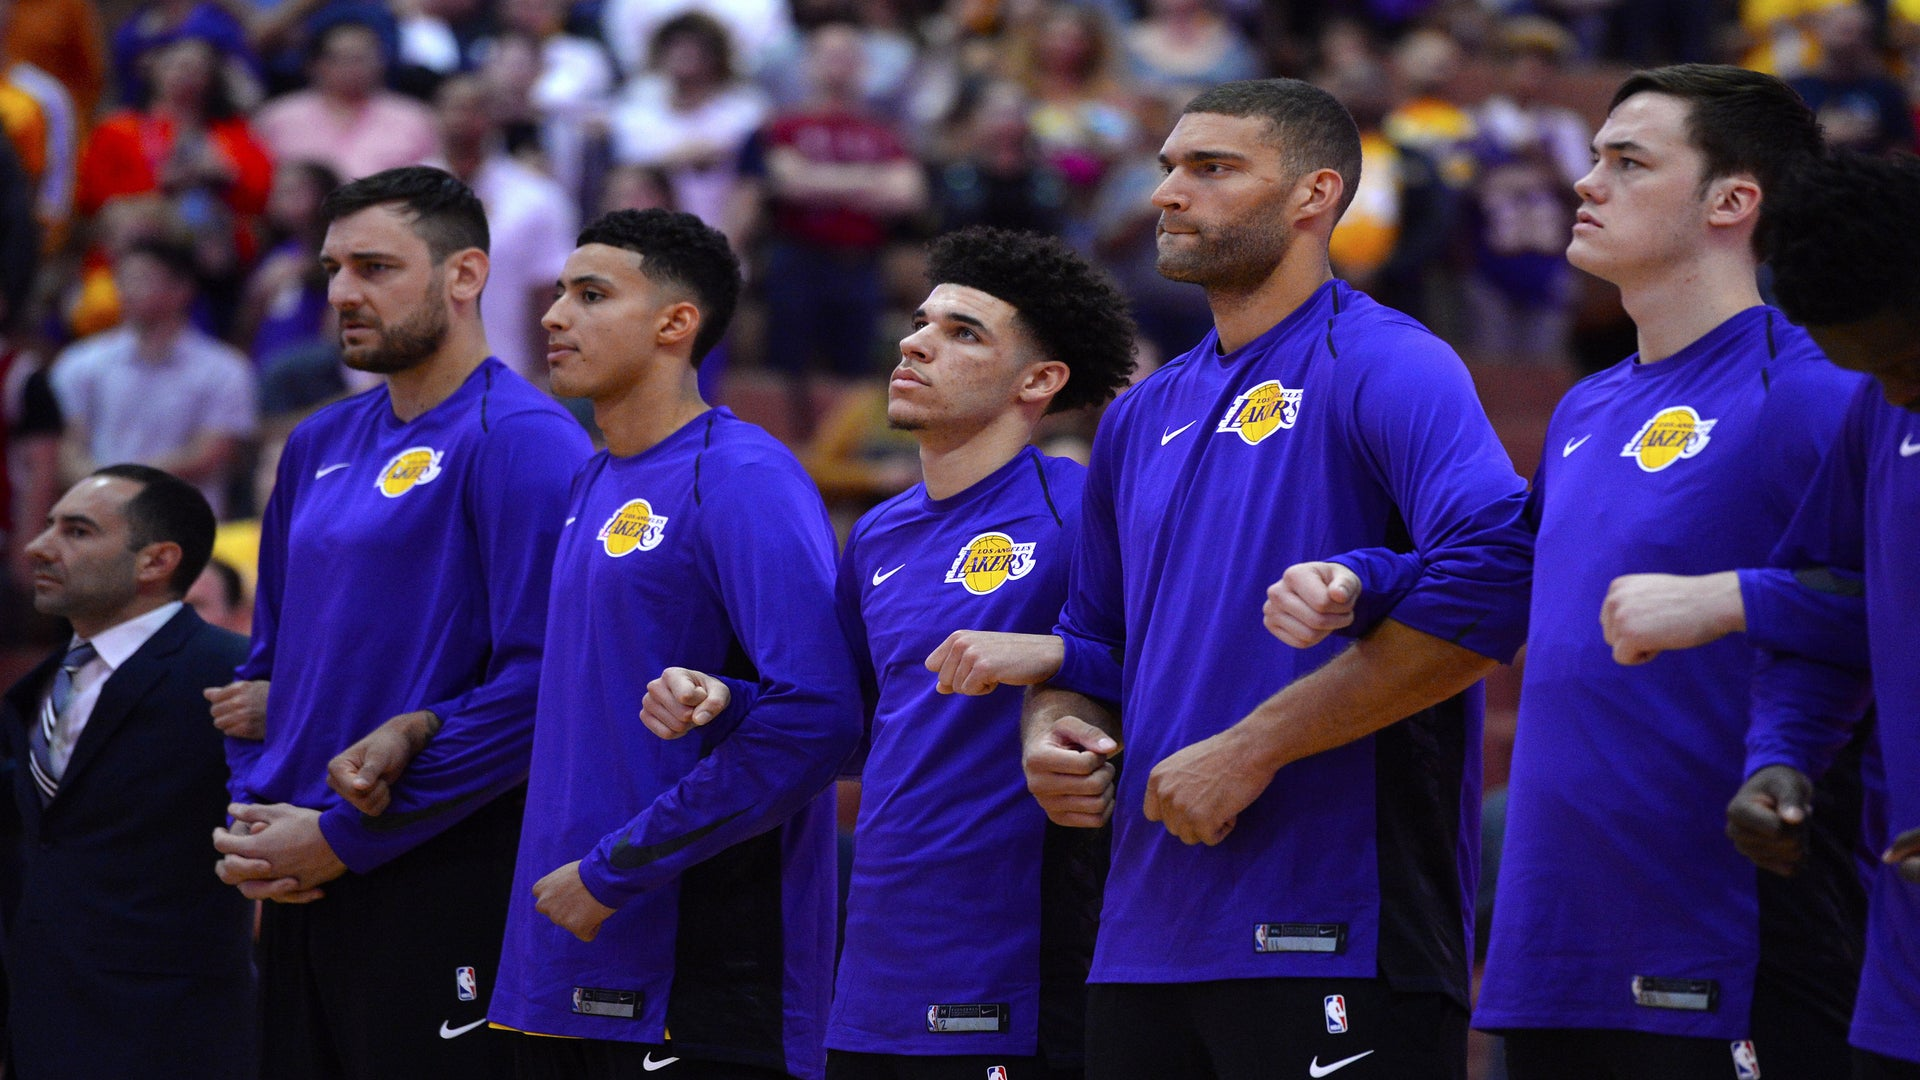 NBA Commissioner: 'My Expectation Is That Our Players Will Stand For The National Anthem'